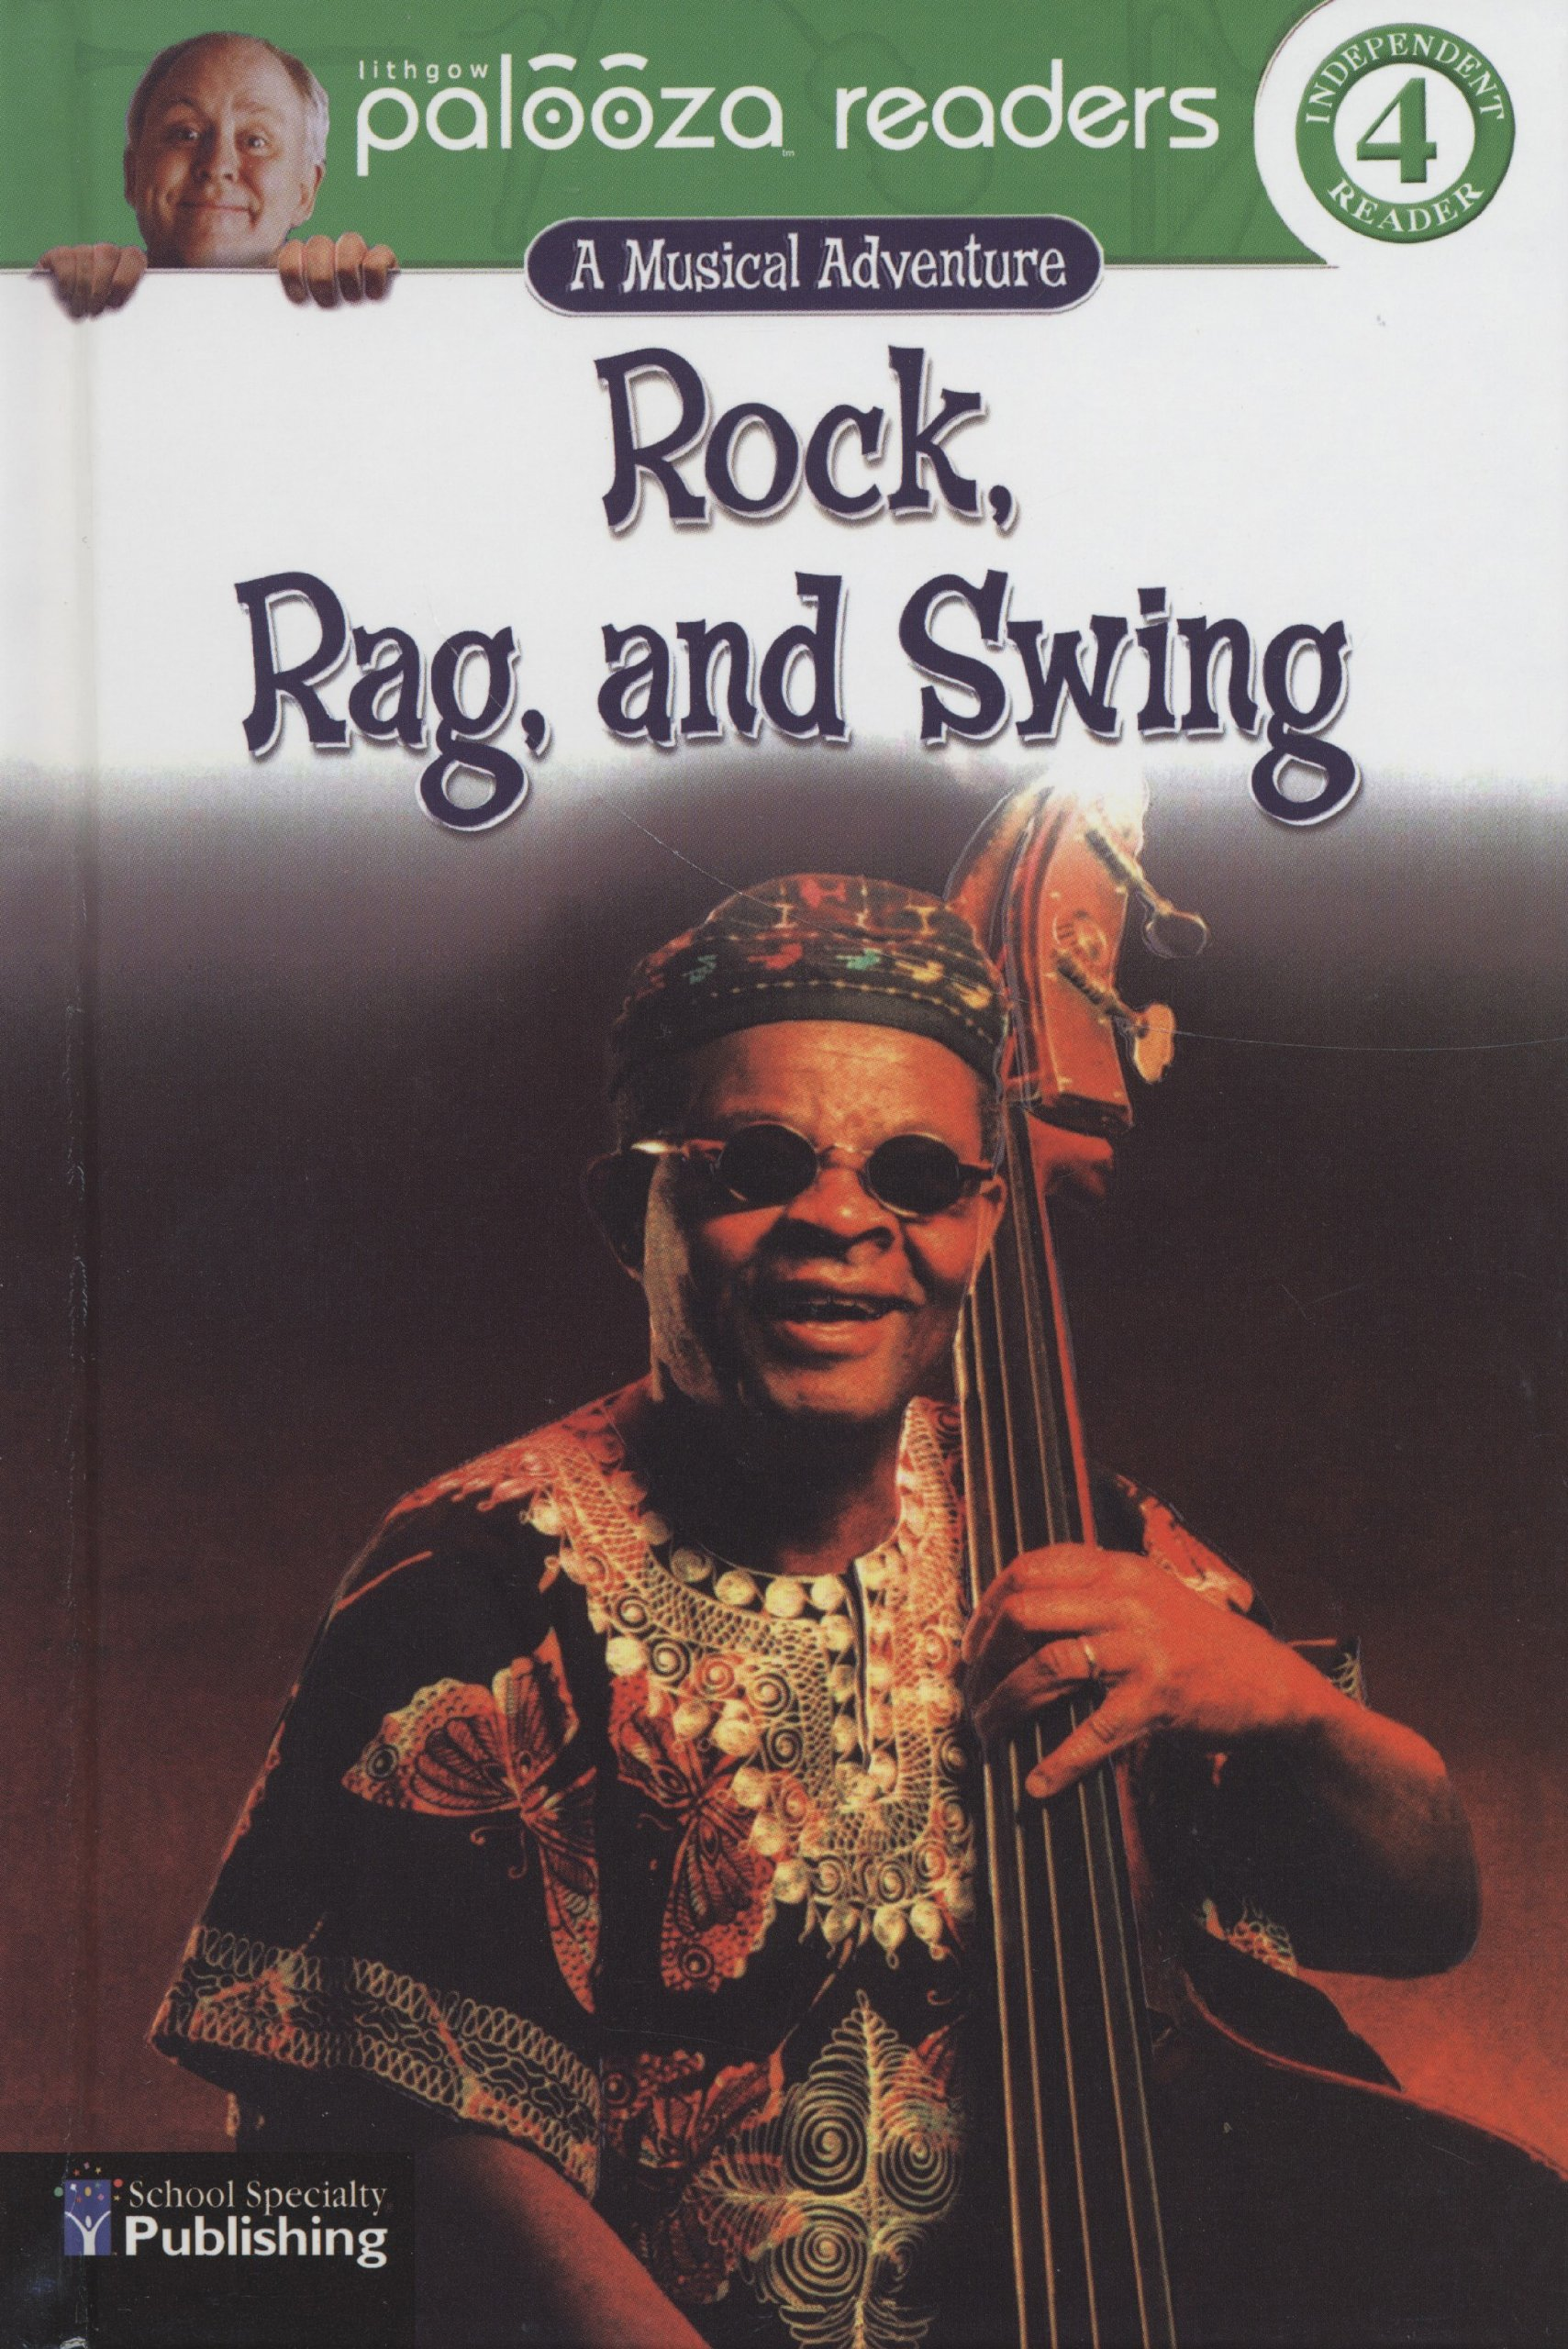 Download Rock, Rag, and Swing (Lithgow Palooza Readers Level 2) pdf